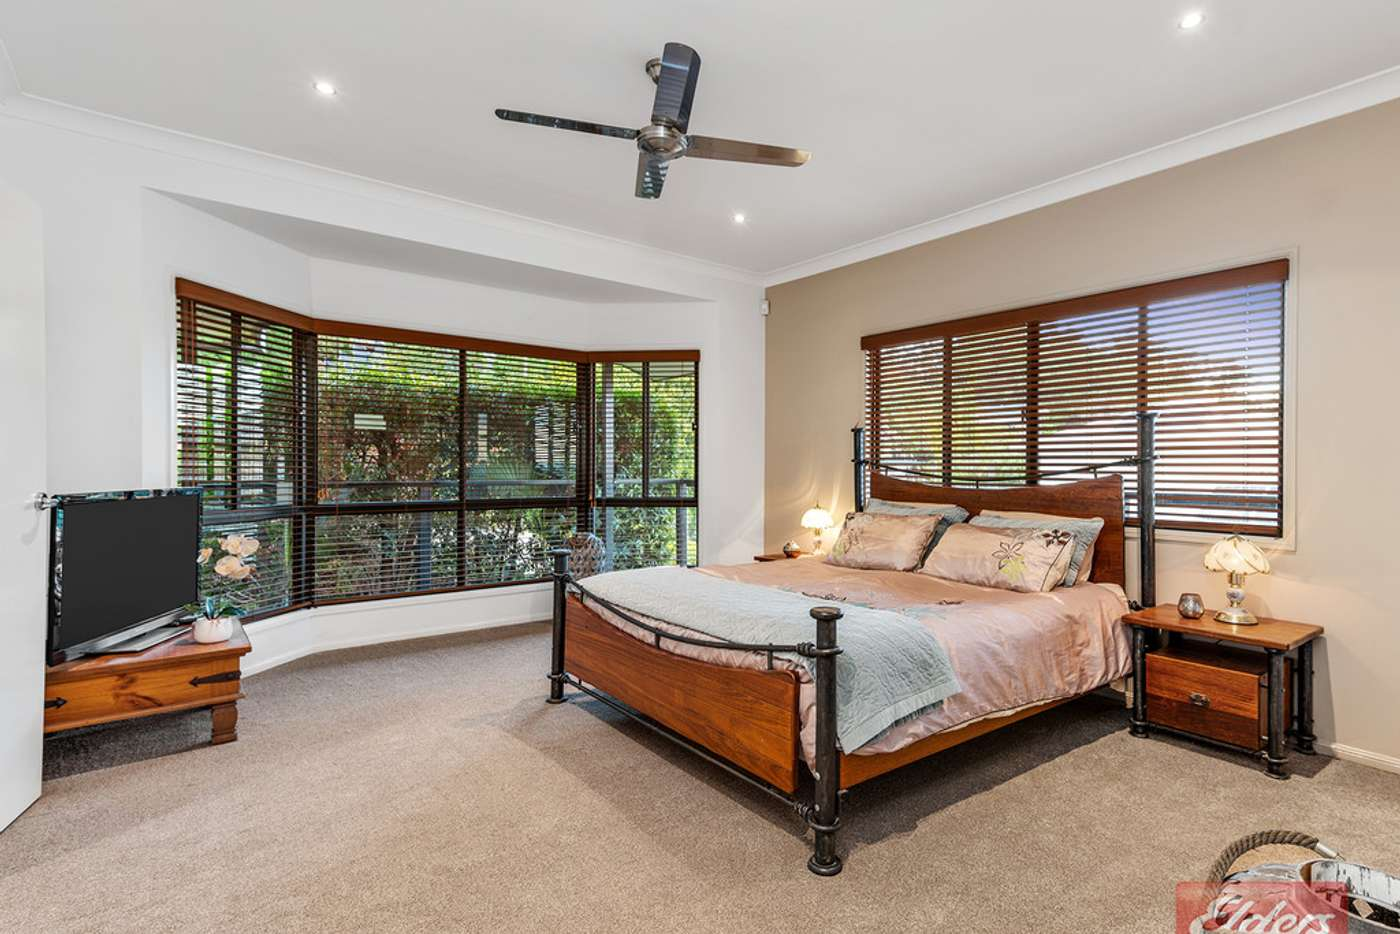 Seventh view of Homely house listing, 5/5 MEOWN COURT, Cornubia QLD 4130